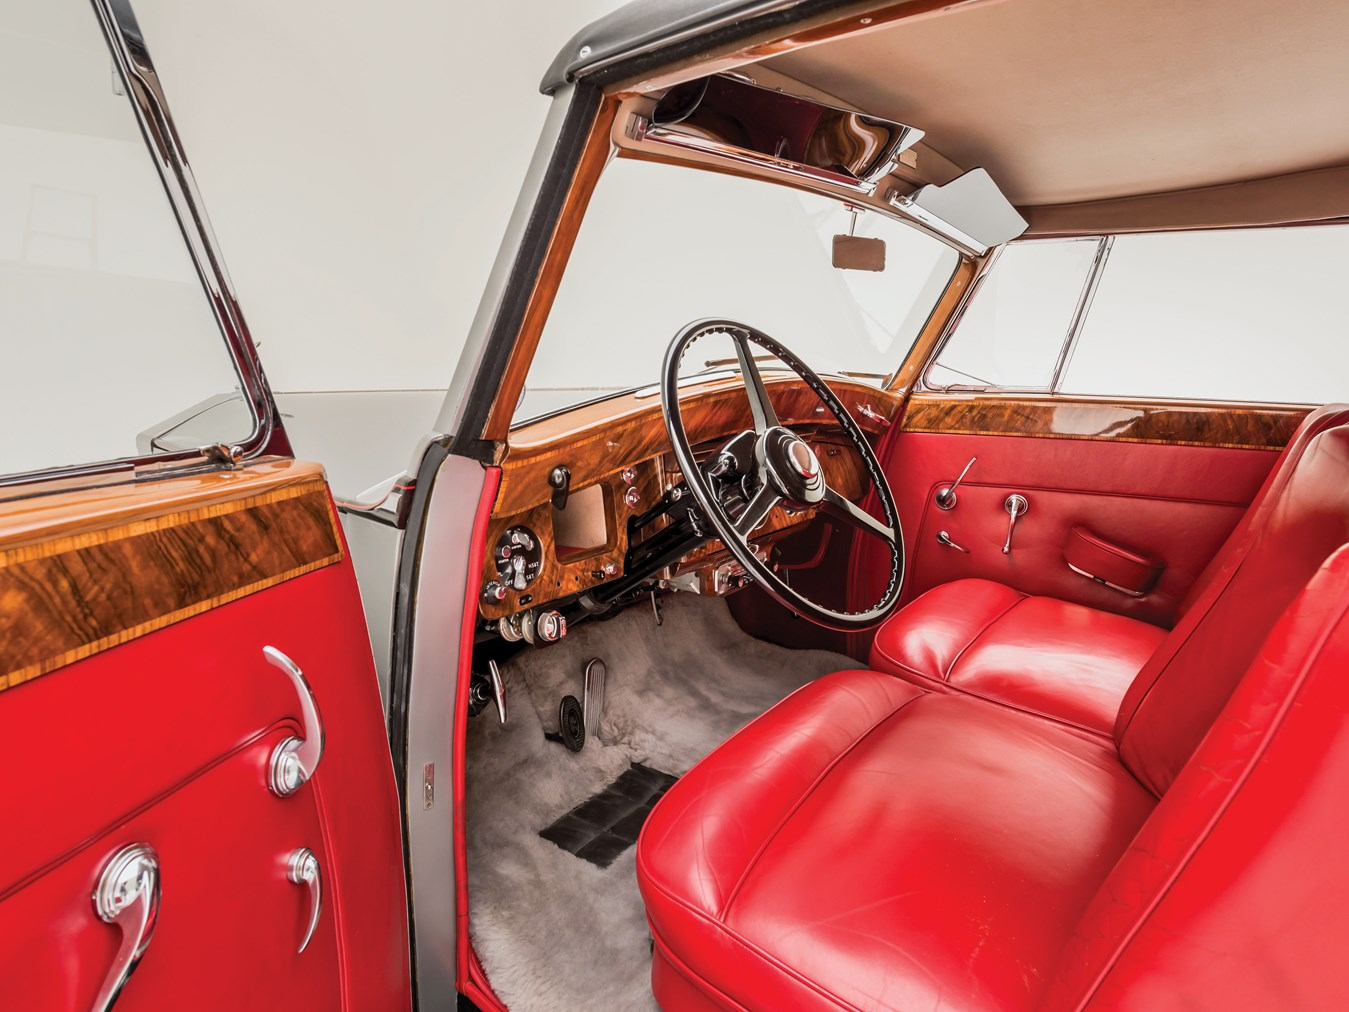 1956 Rolls-Royce Silver Wraith Drophead Coupe by Park Ward